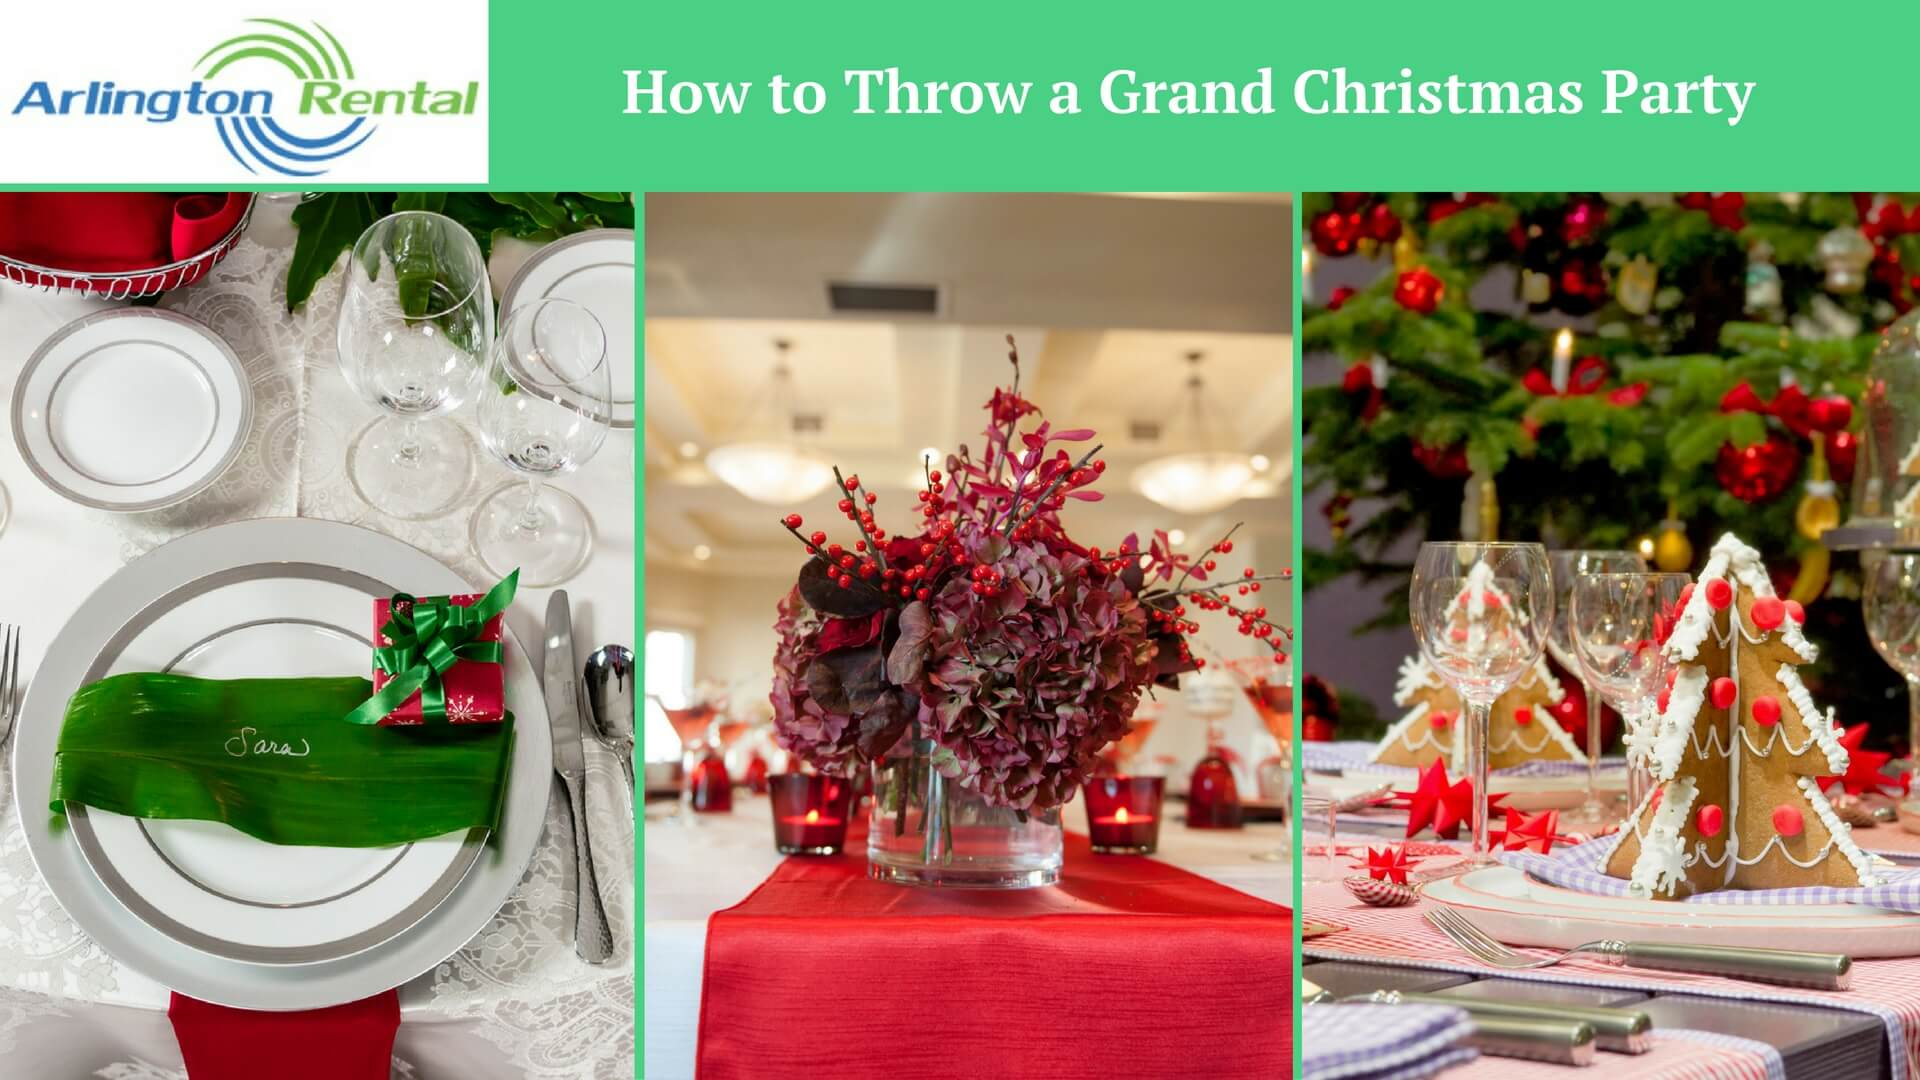 How to Throw a Grand Christmas Party